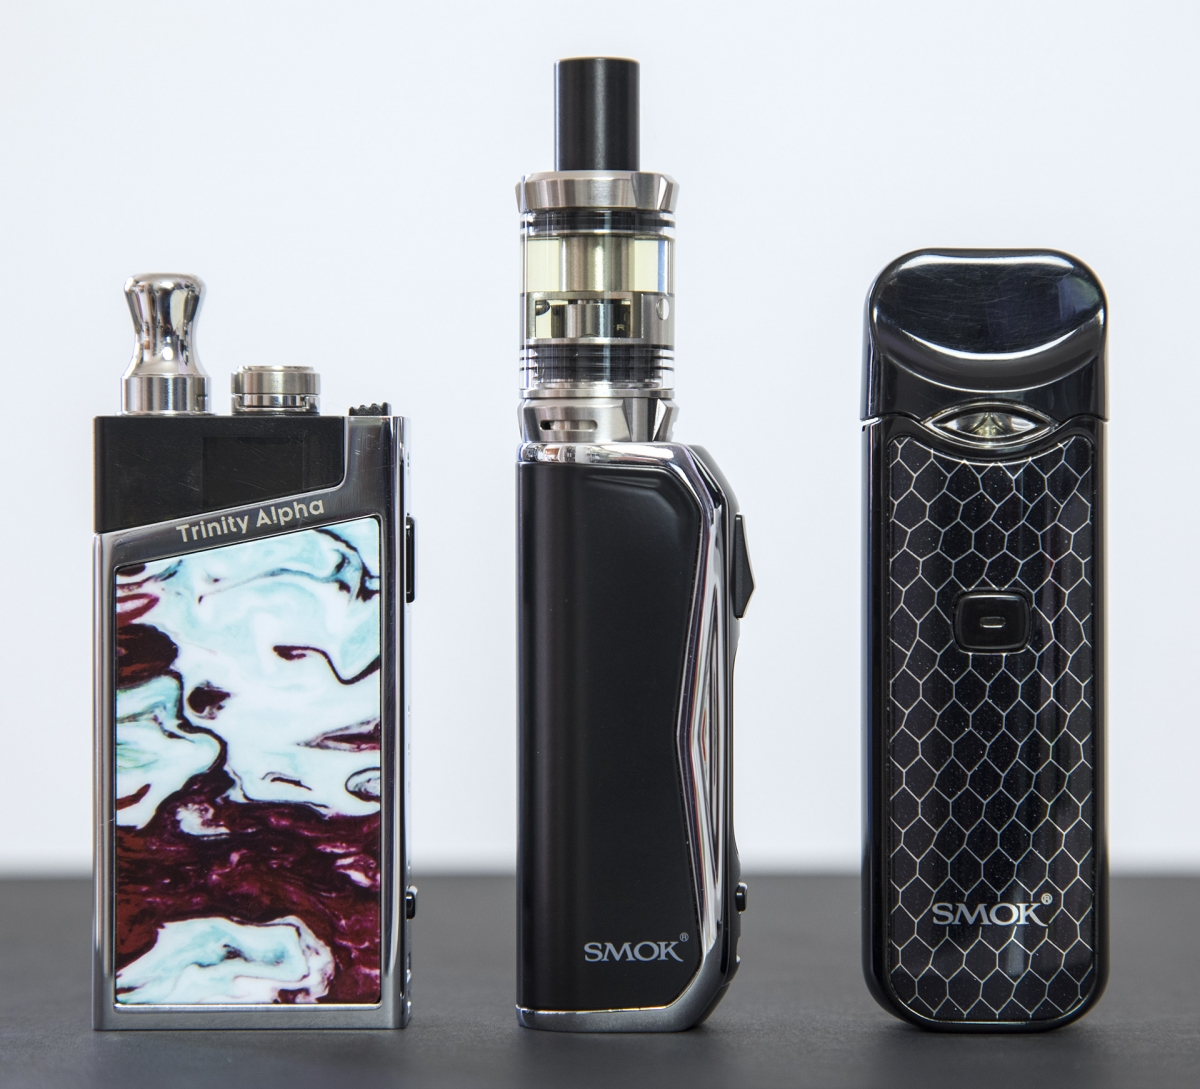 SMOK PRIV N19 Kit comparison